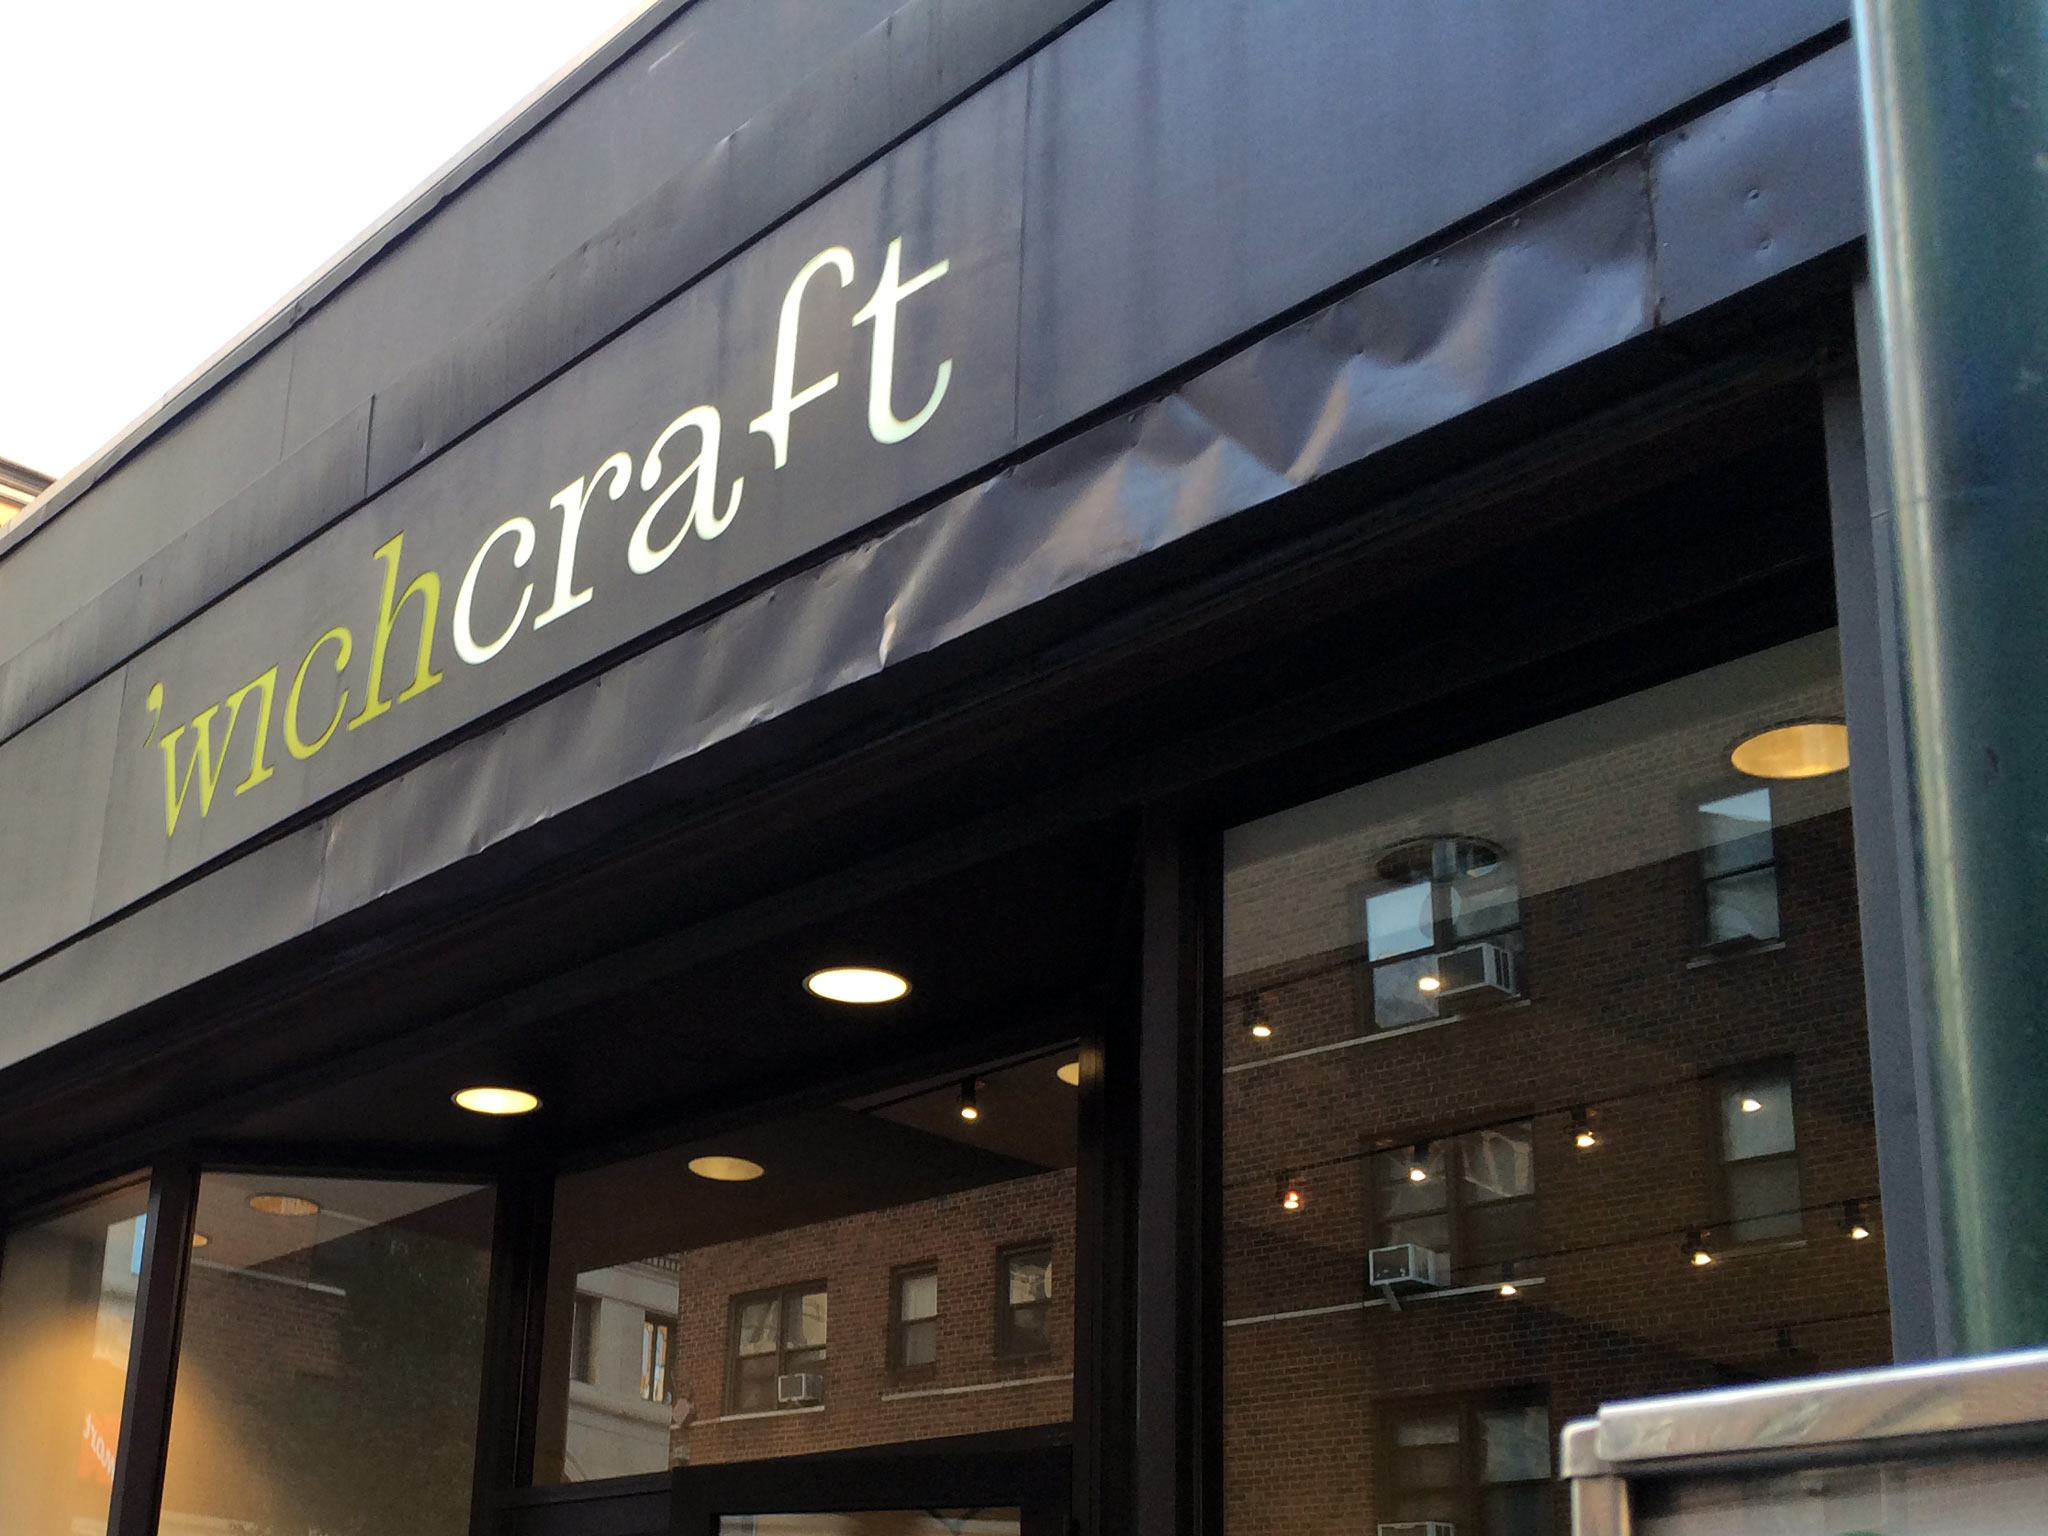 'wichcraft in New York. Photo by alphacityguides.